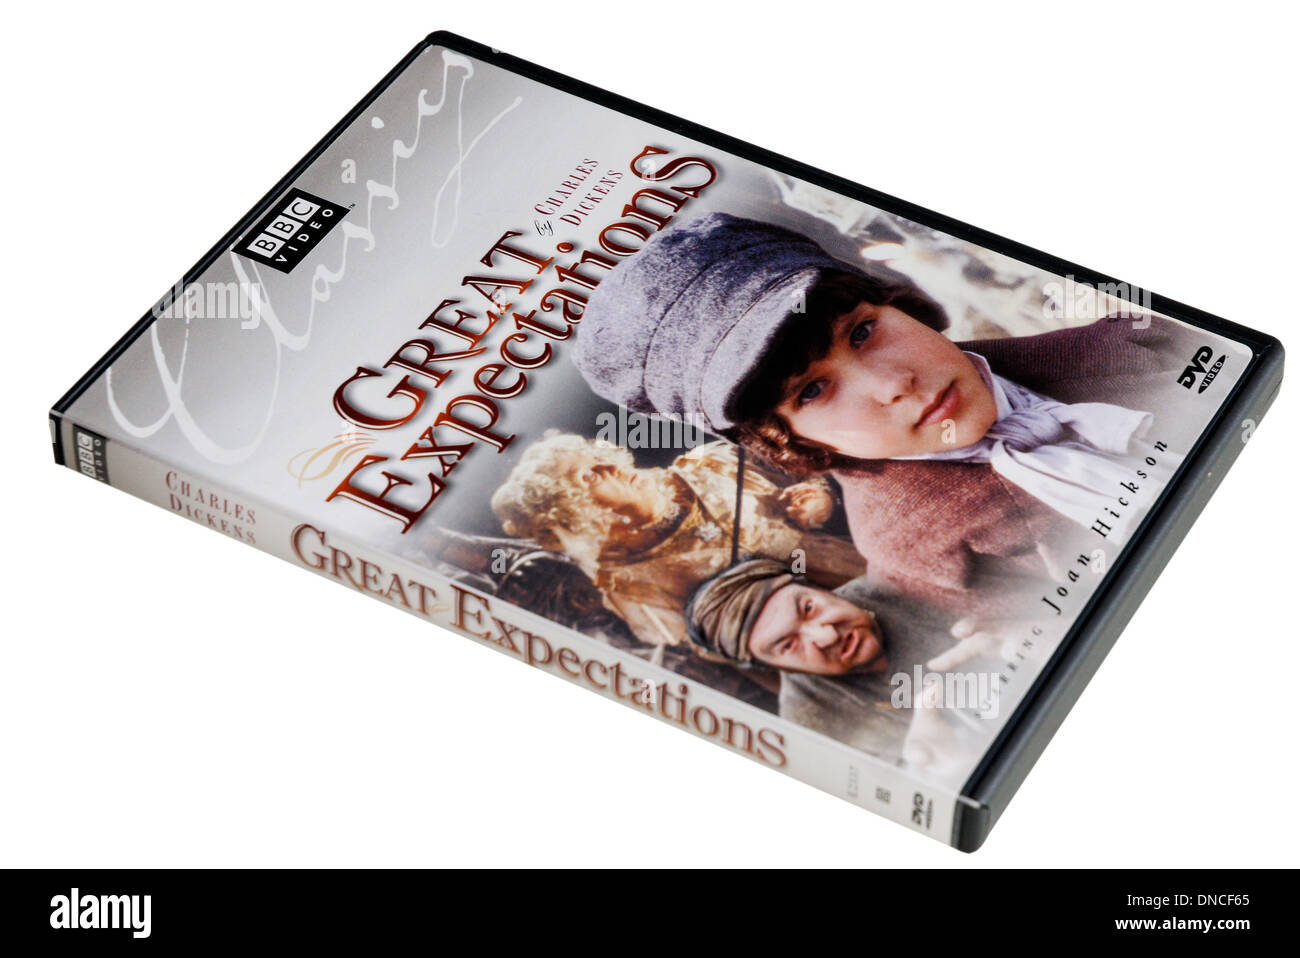 BBC Charles Dickens DVD of Great Expectations - Stock Image